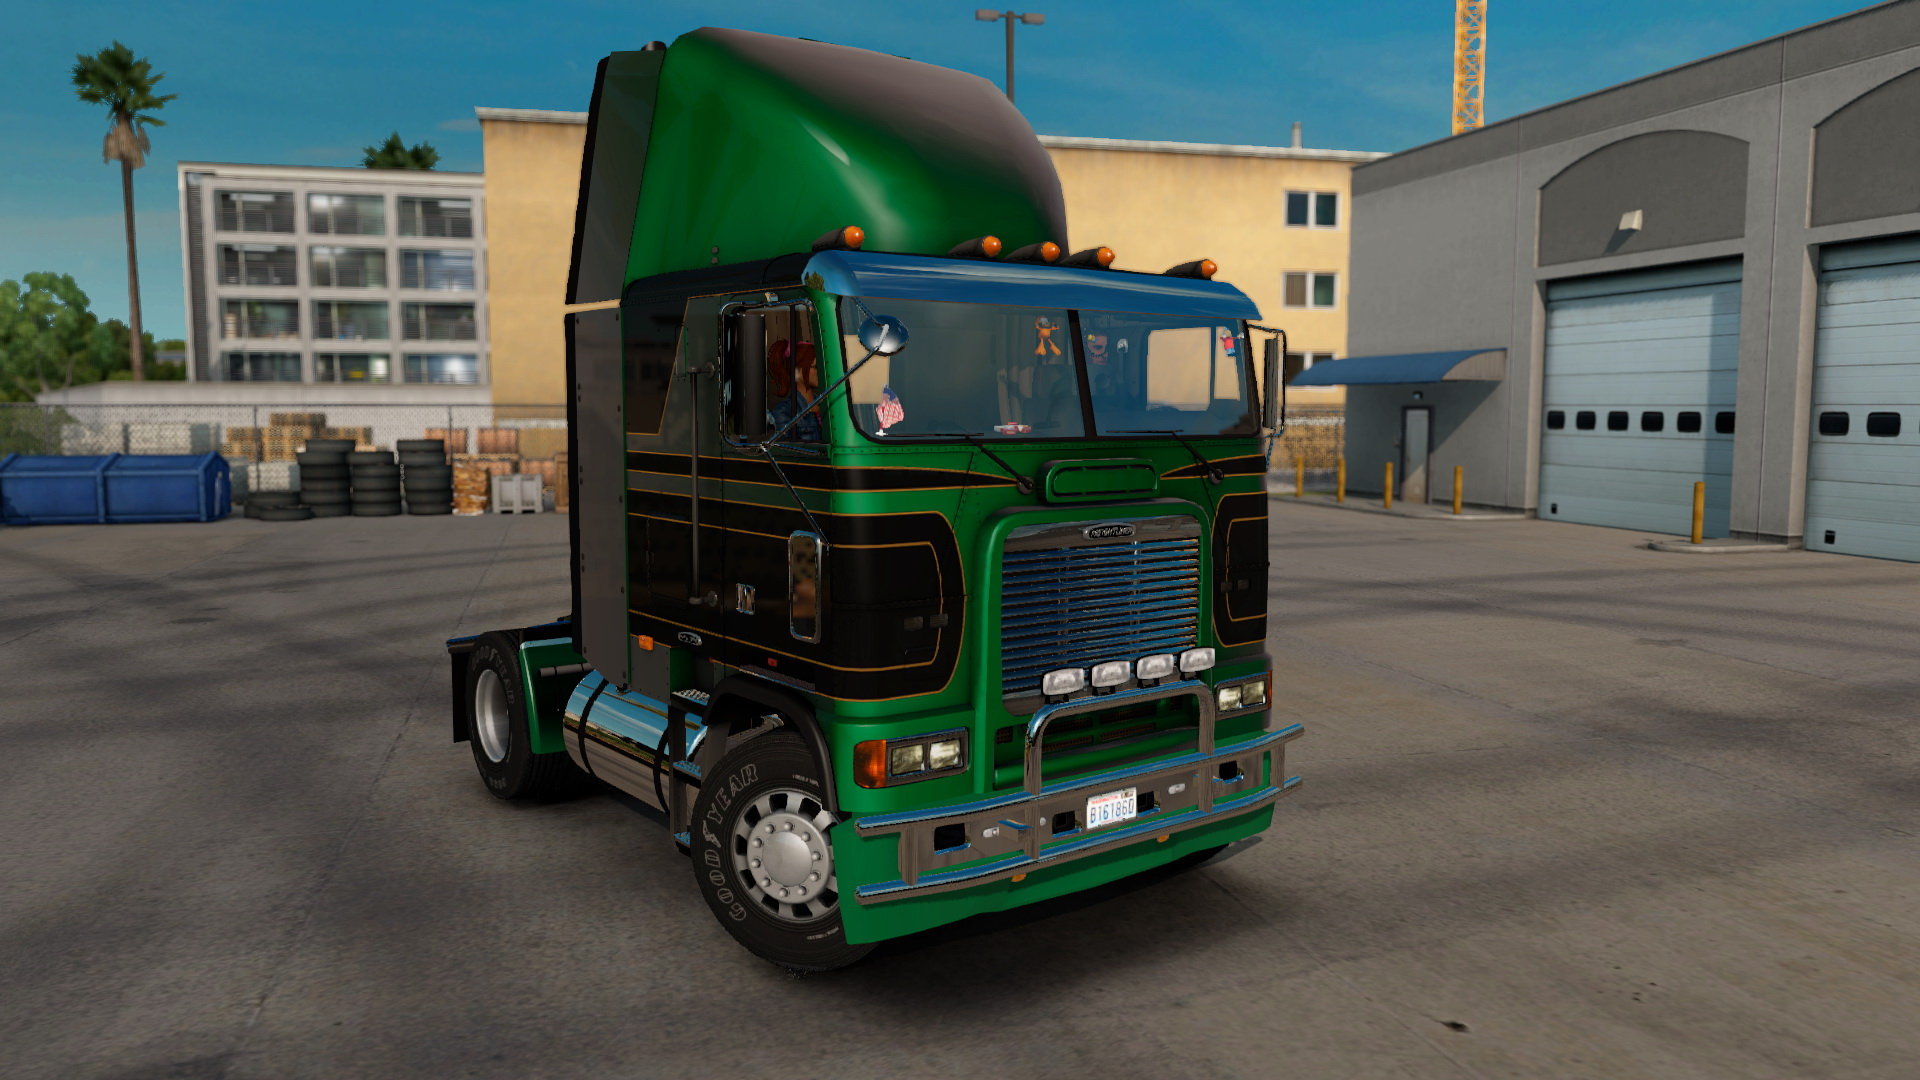 Freightliner FLB + Interior v2.5 Edited by Solaris36 (Upgraded) (v1.4.x)